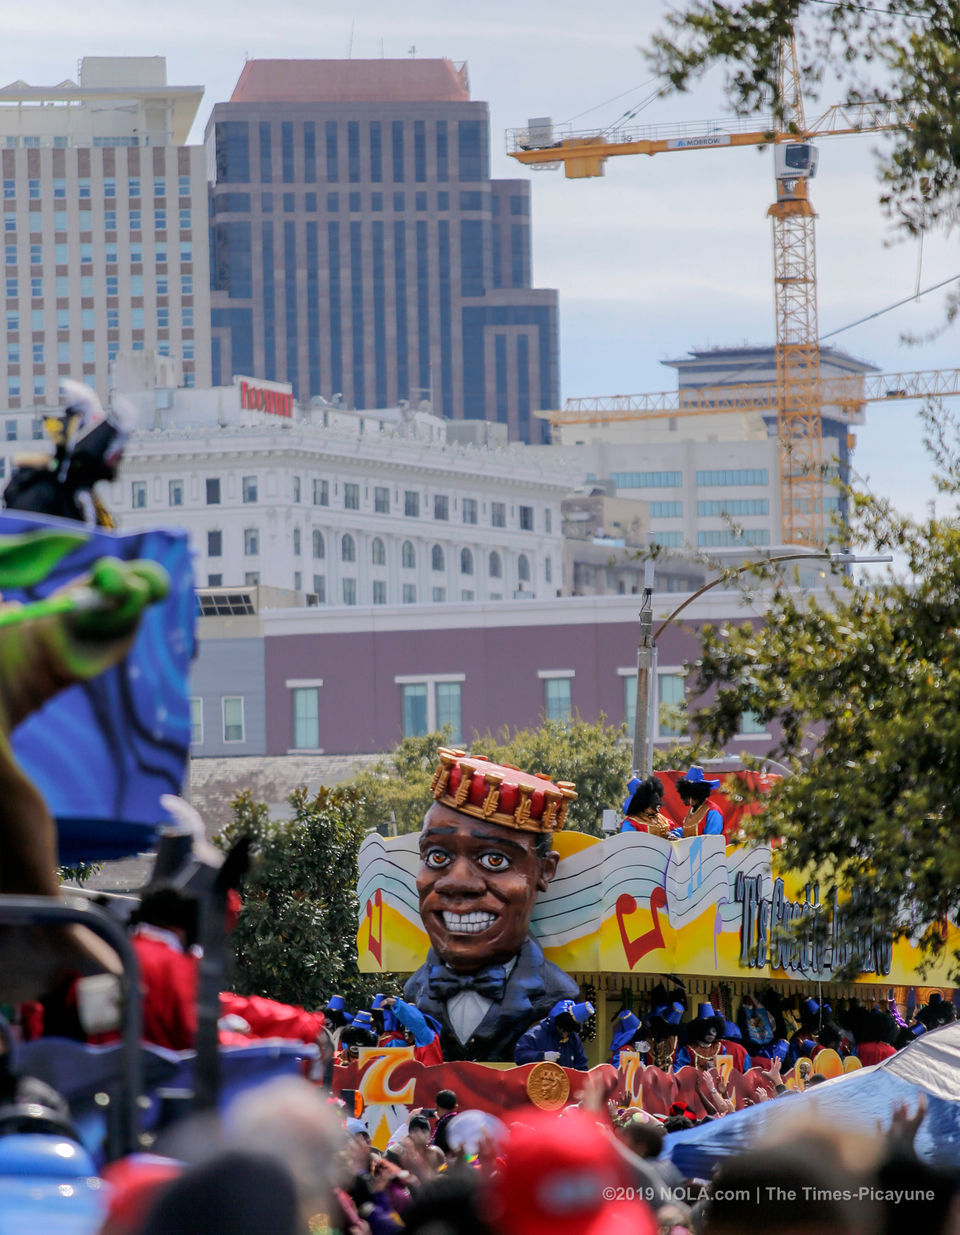 See photos from Zulu parade 2019